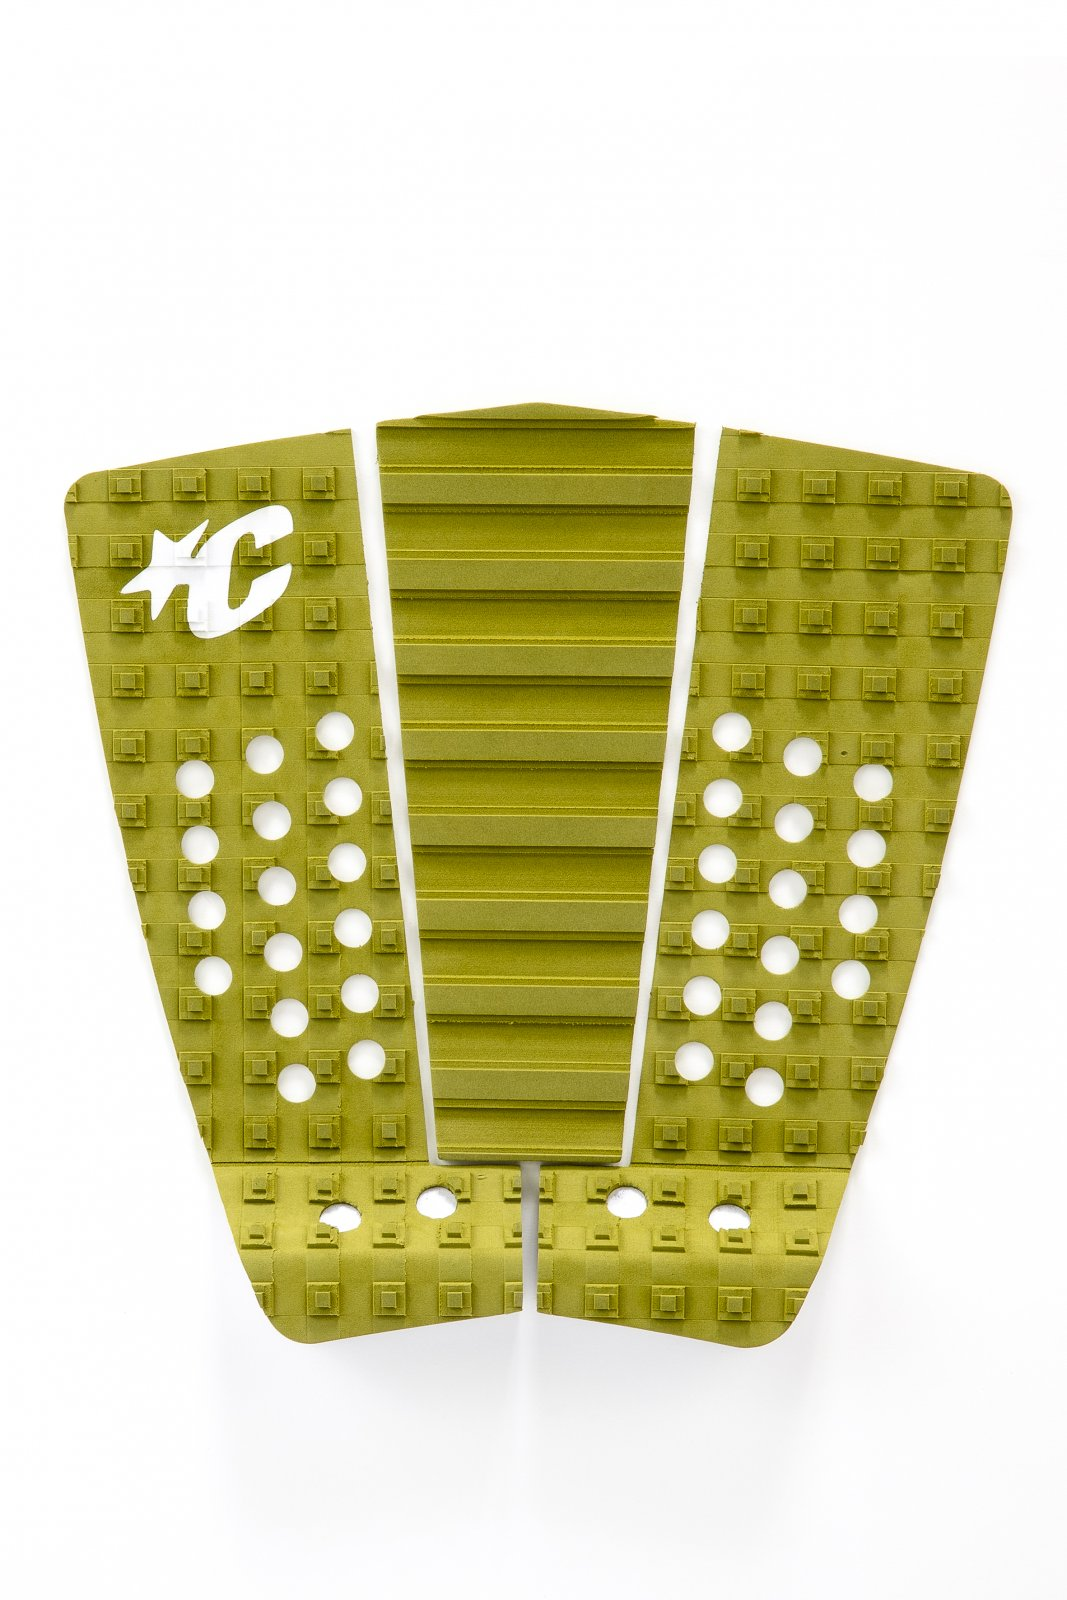 Creatures of Leisure Mitch Coleborn '20 Traction Pad